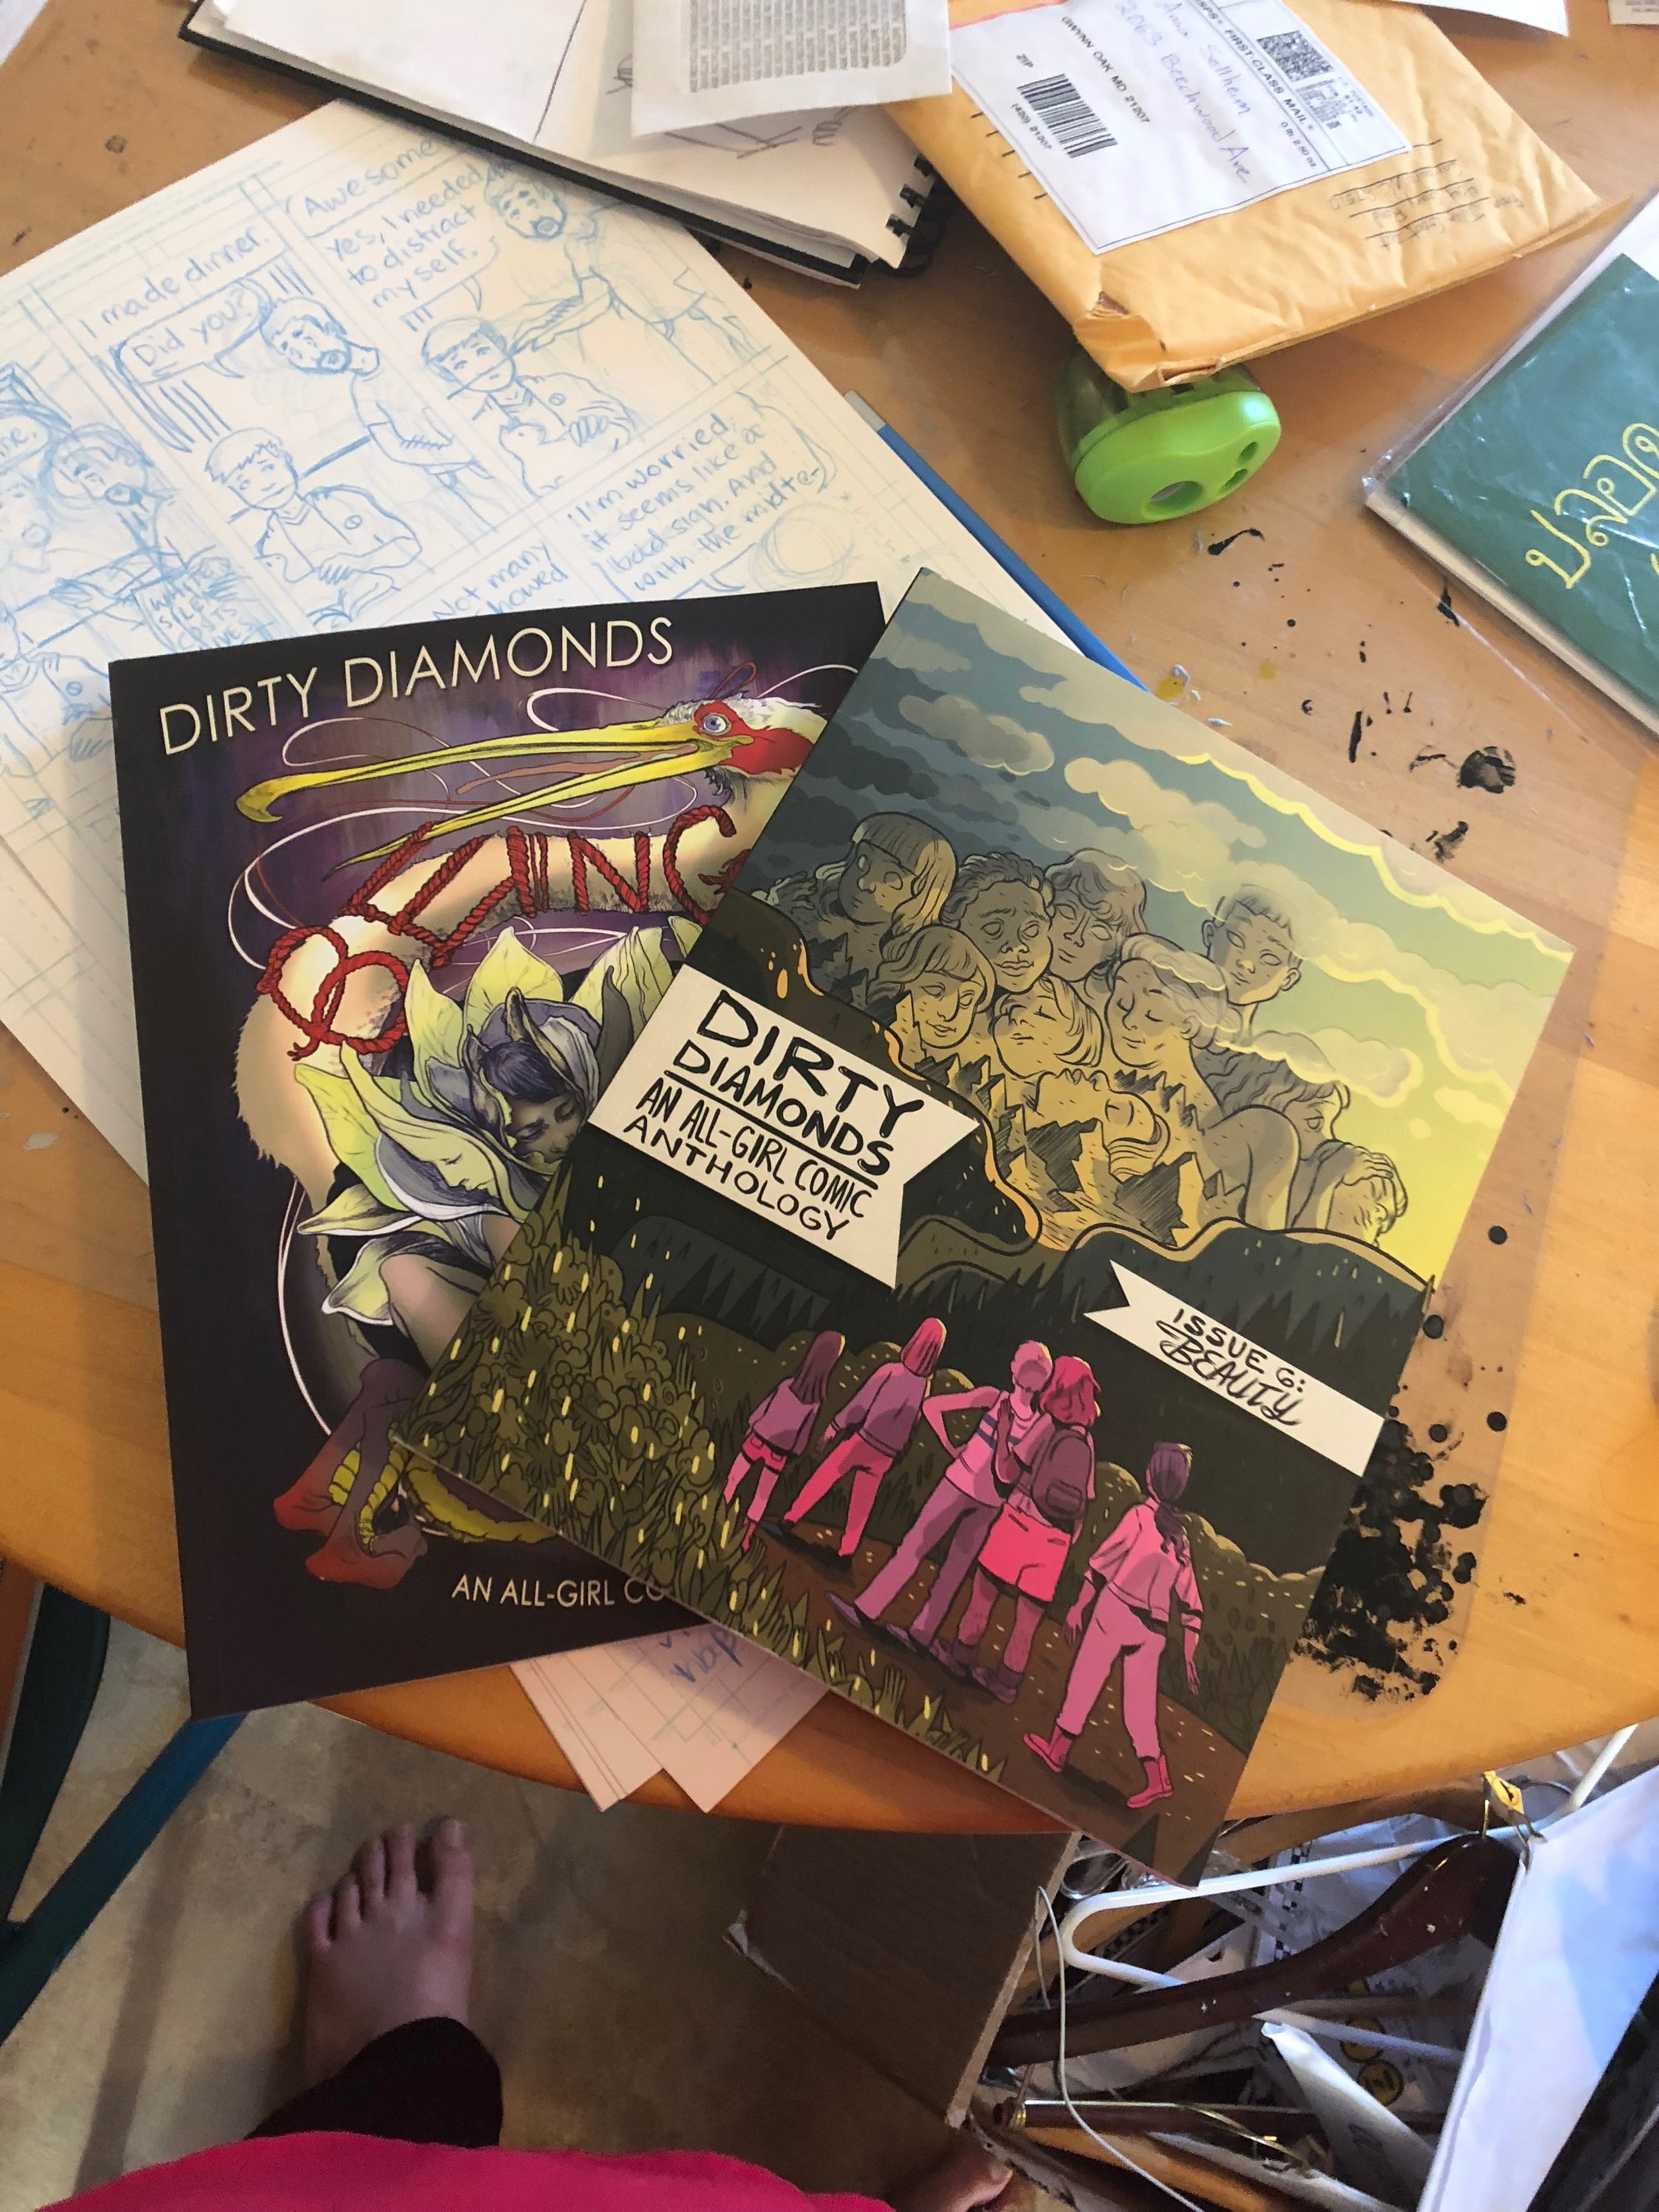 Dirty Diamonds books plus pencils of my current project.